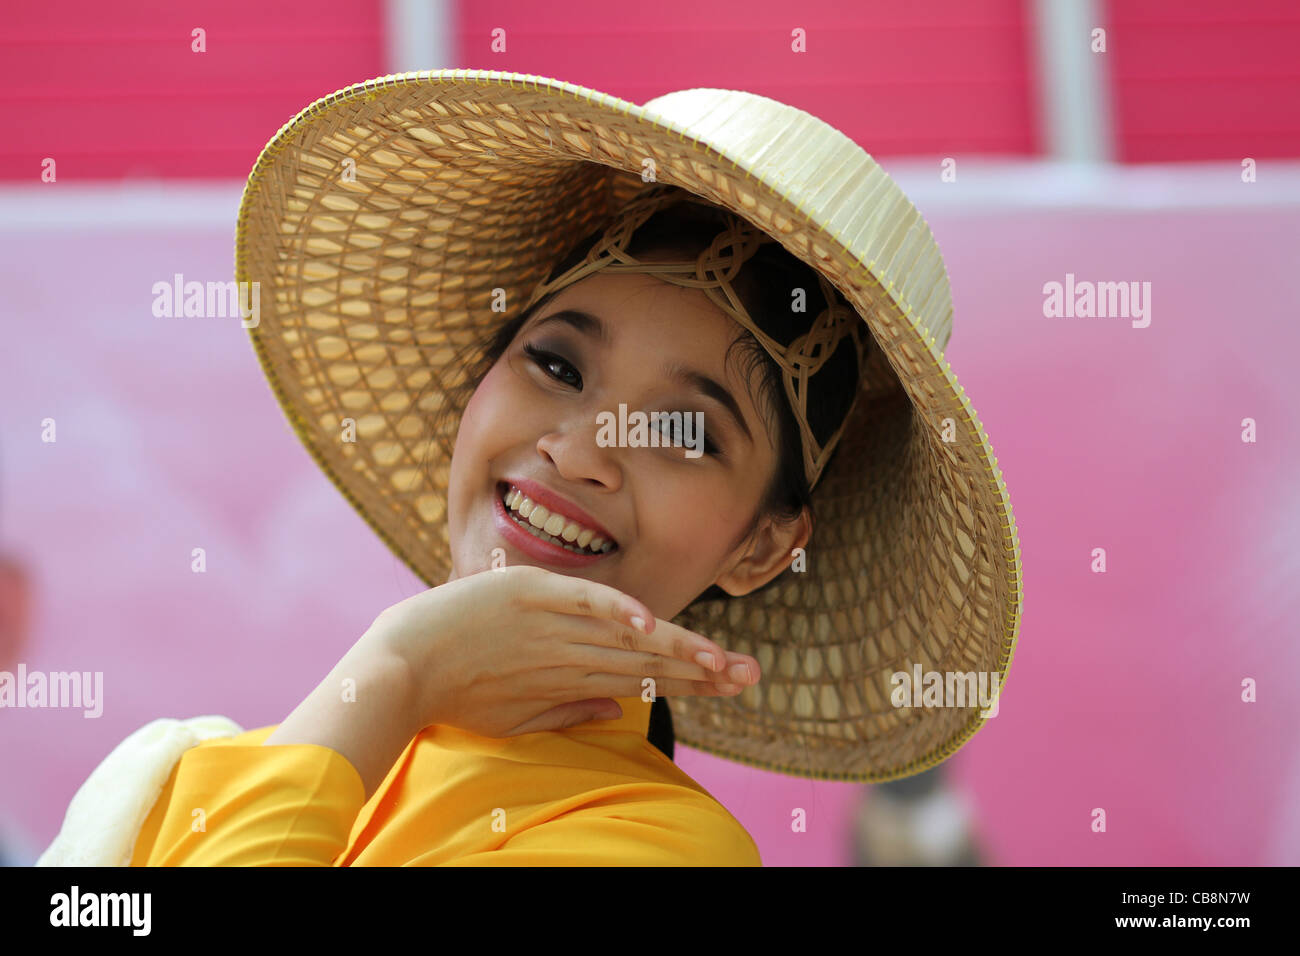 Thai girl smile stock photos thai girl smile stock images alamy a thai girl in traditional costume and wearing a basket weave hat gestures with her kristyandbryce Images